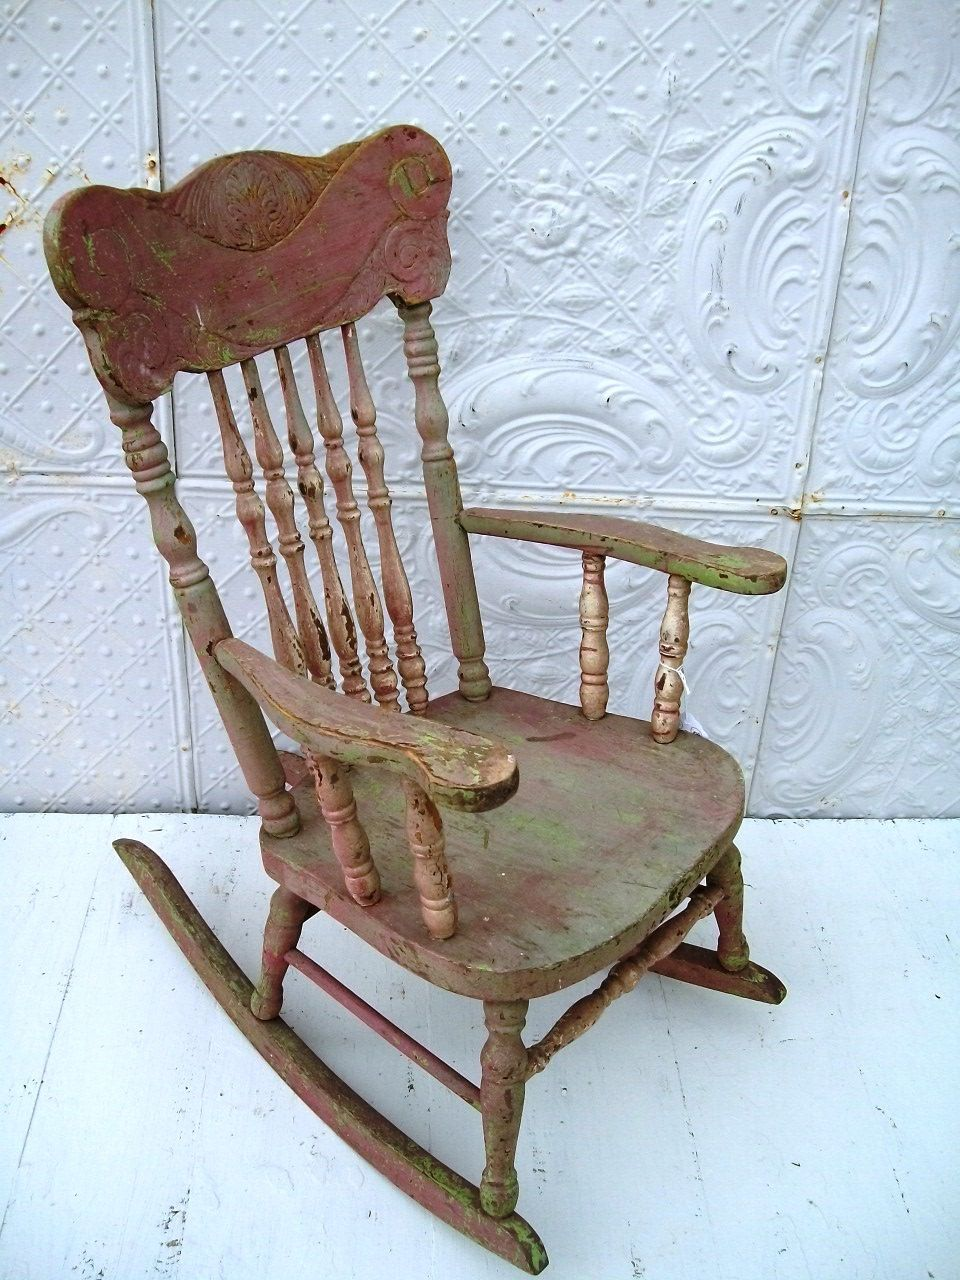 Pleasing Lace Crazy Vintage Rocking Chair My Next Redo Forskolin Free Trial Chair Design Images Forskolin Free Trialorg